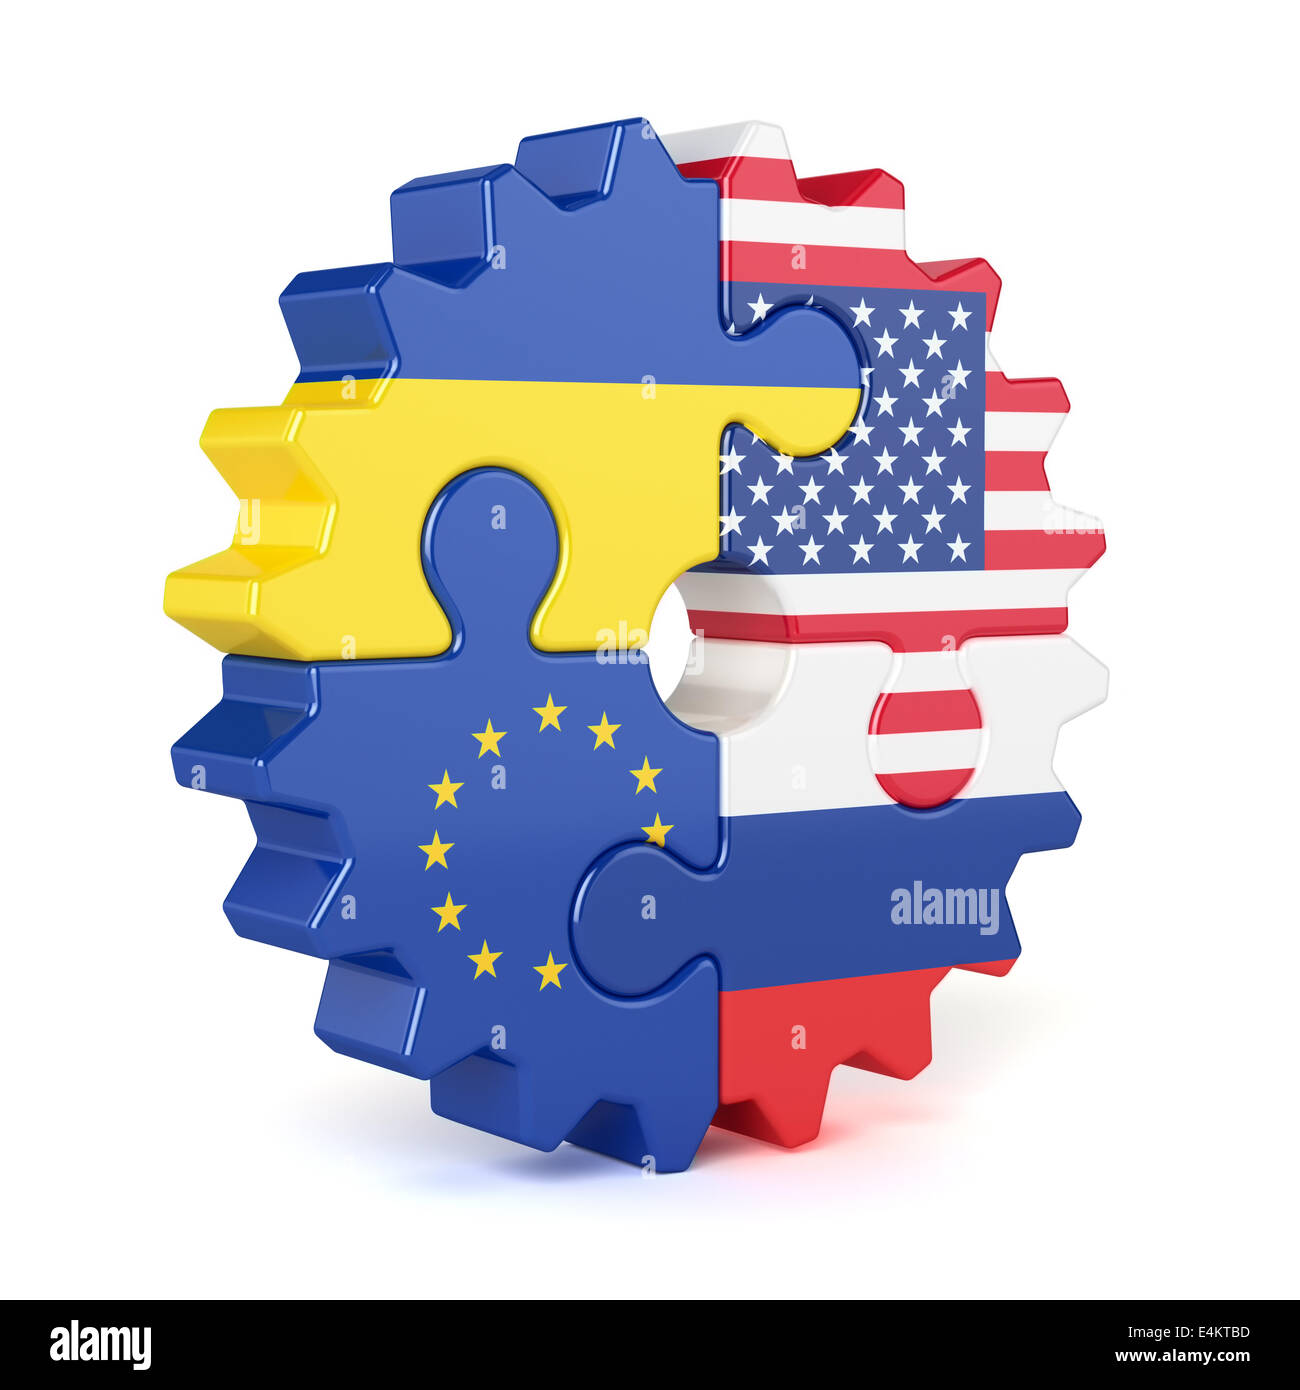 Puzzle gear of stacked flags European Union, USA, Russia, and Ukraine. Isolated on white background - Stock Image